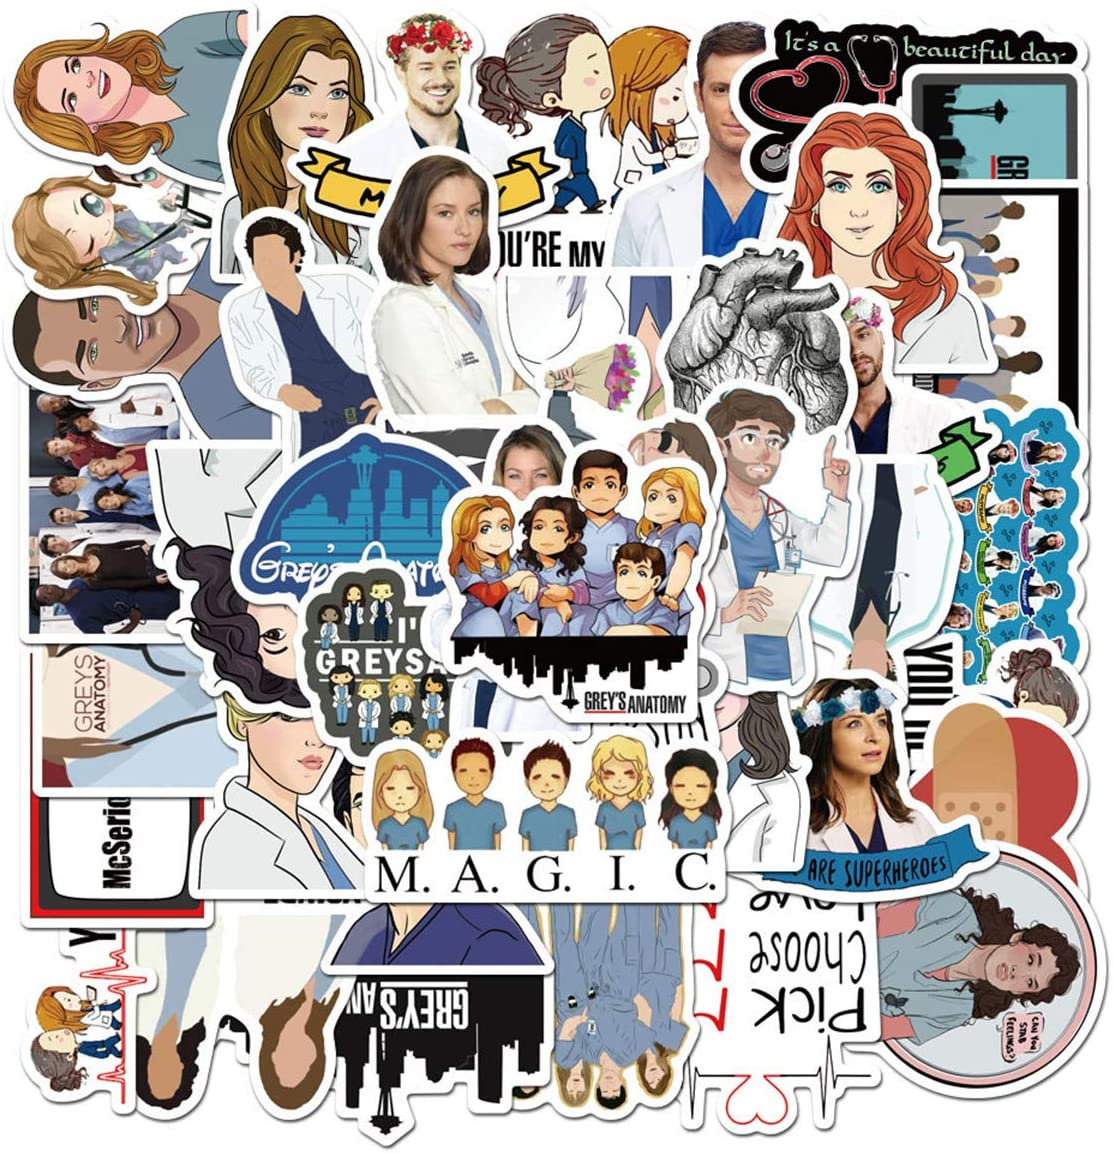 TV Grey's Anatomy Stickers for Water Bottles 50pcs Waterproof,Aesthetic,Trendy Stickers for Teens,Girls Perfect for Waterbottle,Laptop,Phone,Travel Extra Durable Vinyl (50pcs Grey's Anatomy Stickers)